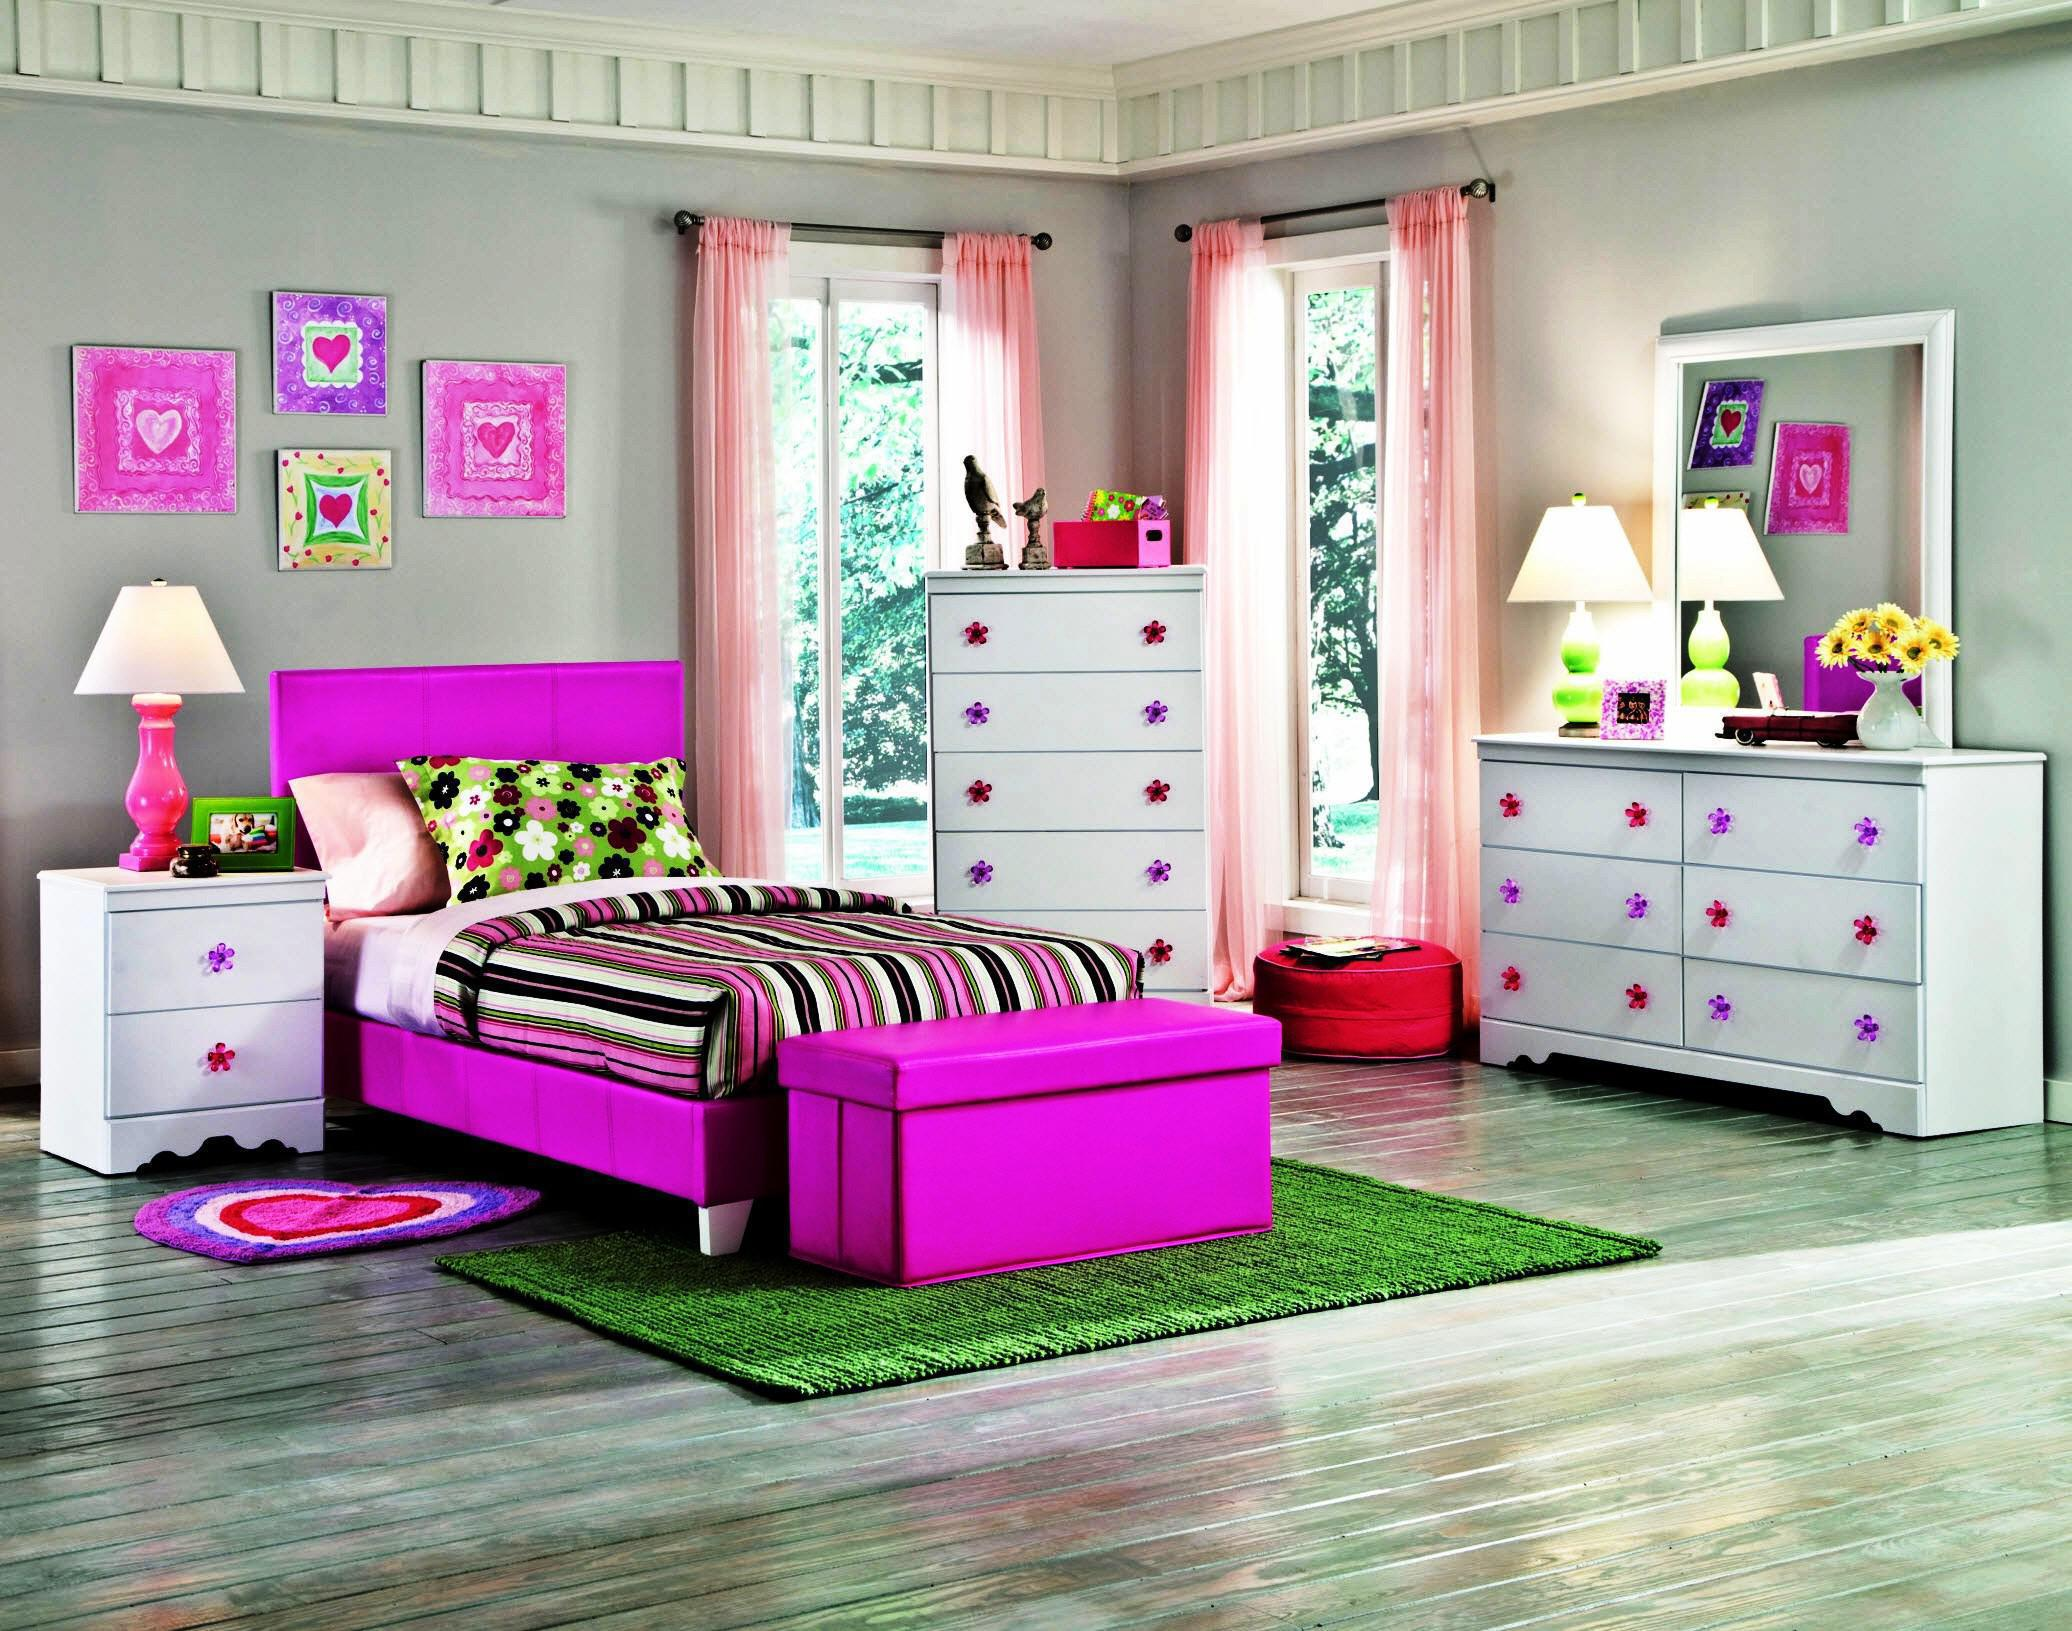 Girls bedroom sets the most inevitable items for home and decoration for girls UWWMBMO